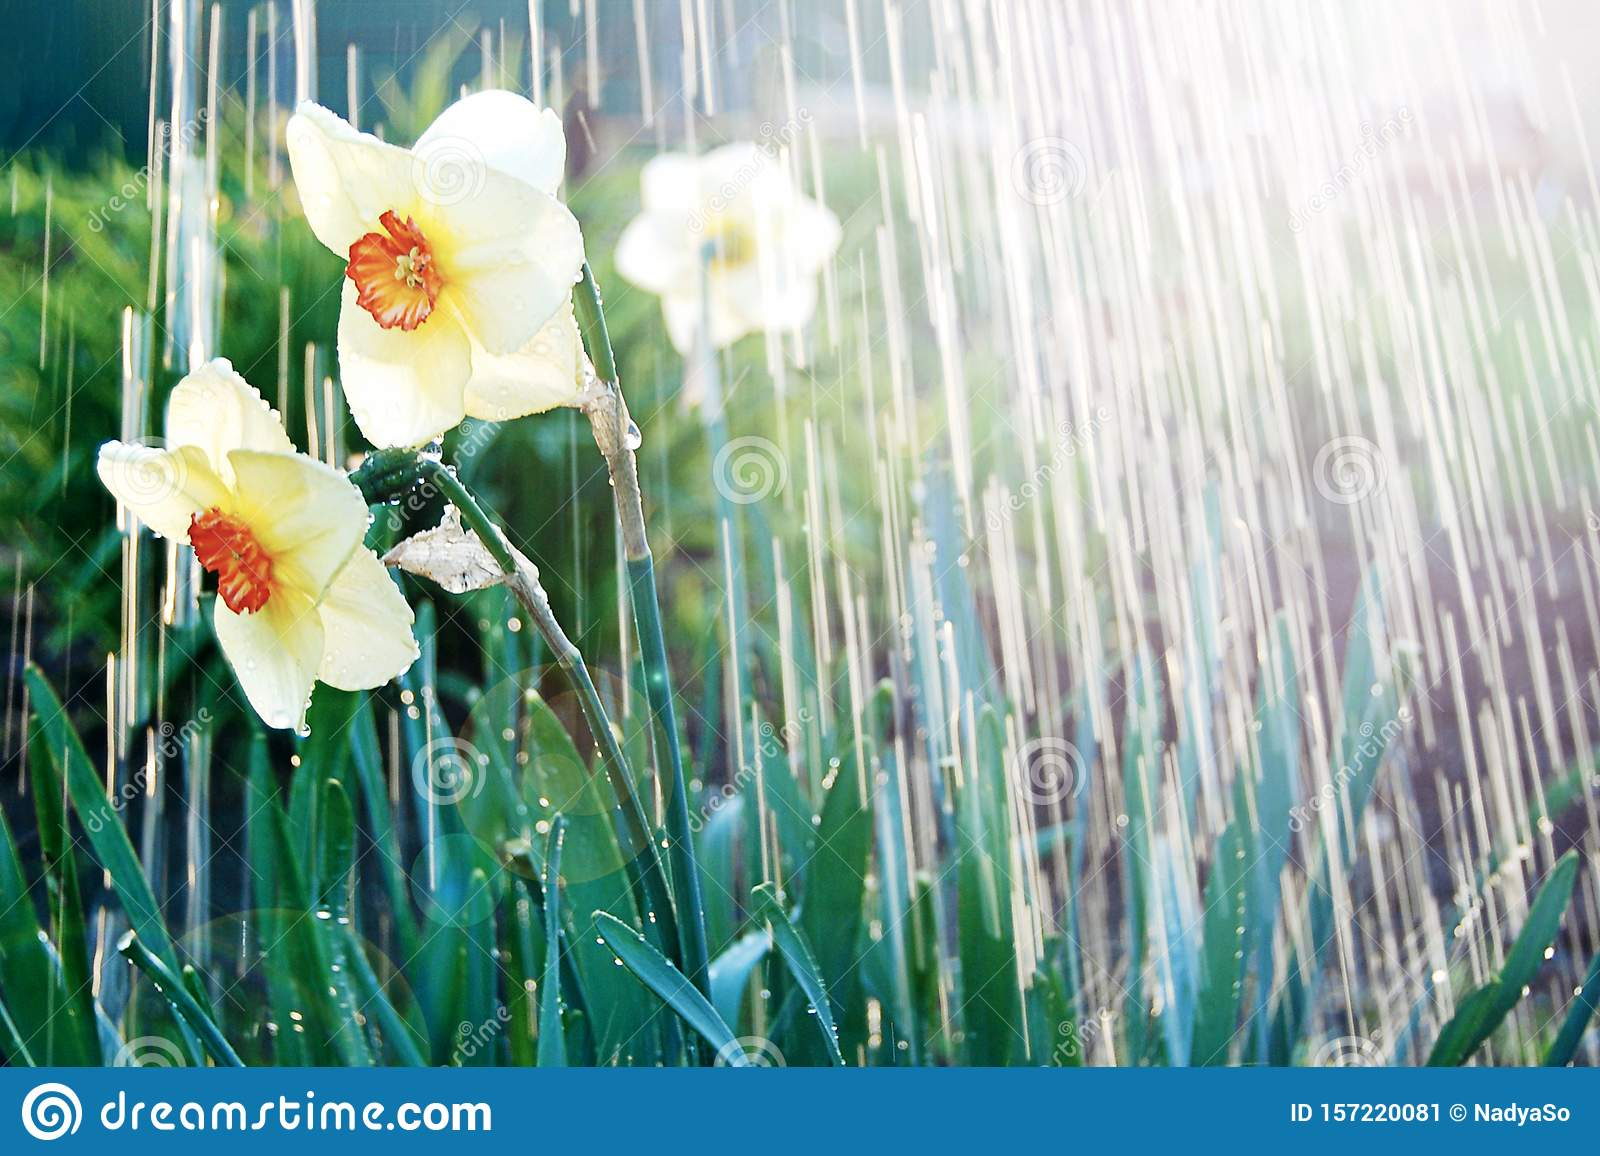 Watering beutiful flowers dafodills, sunburst and pouring water. April showers